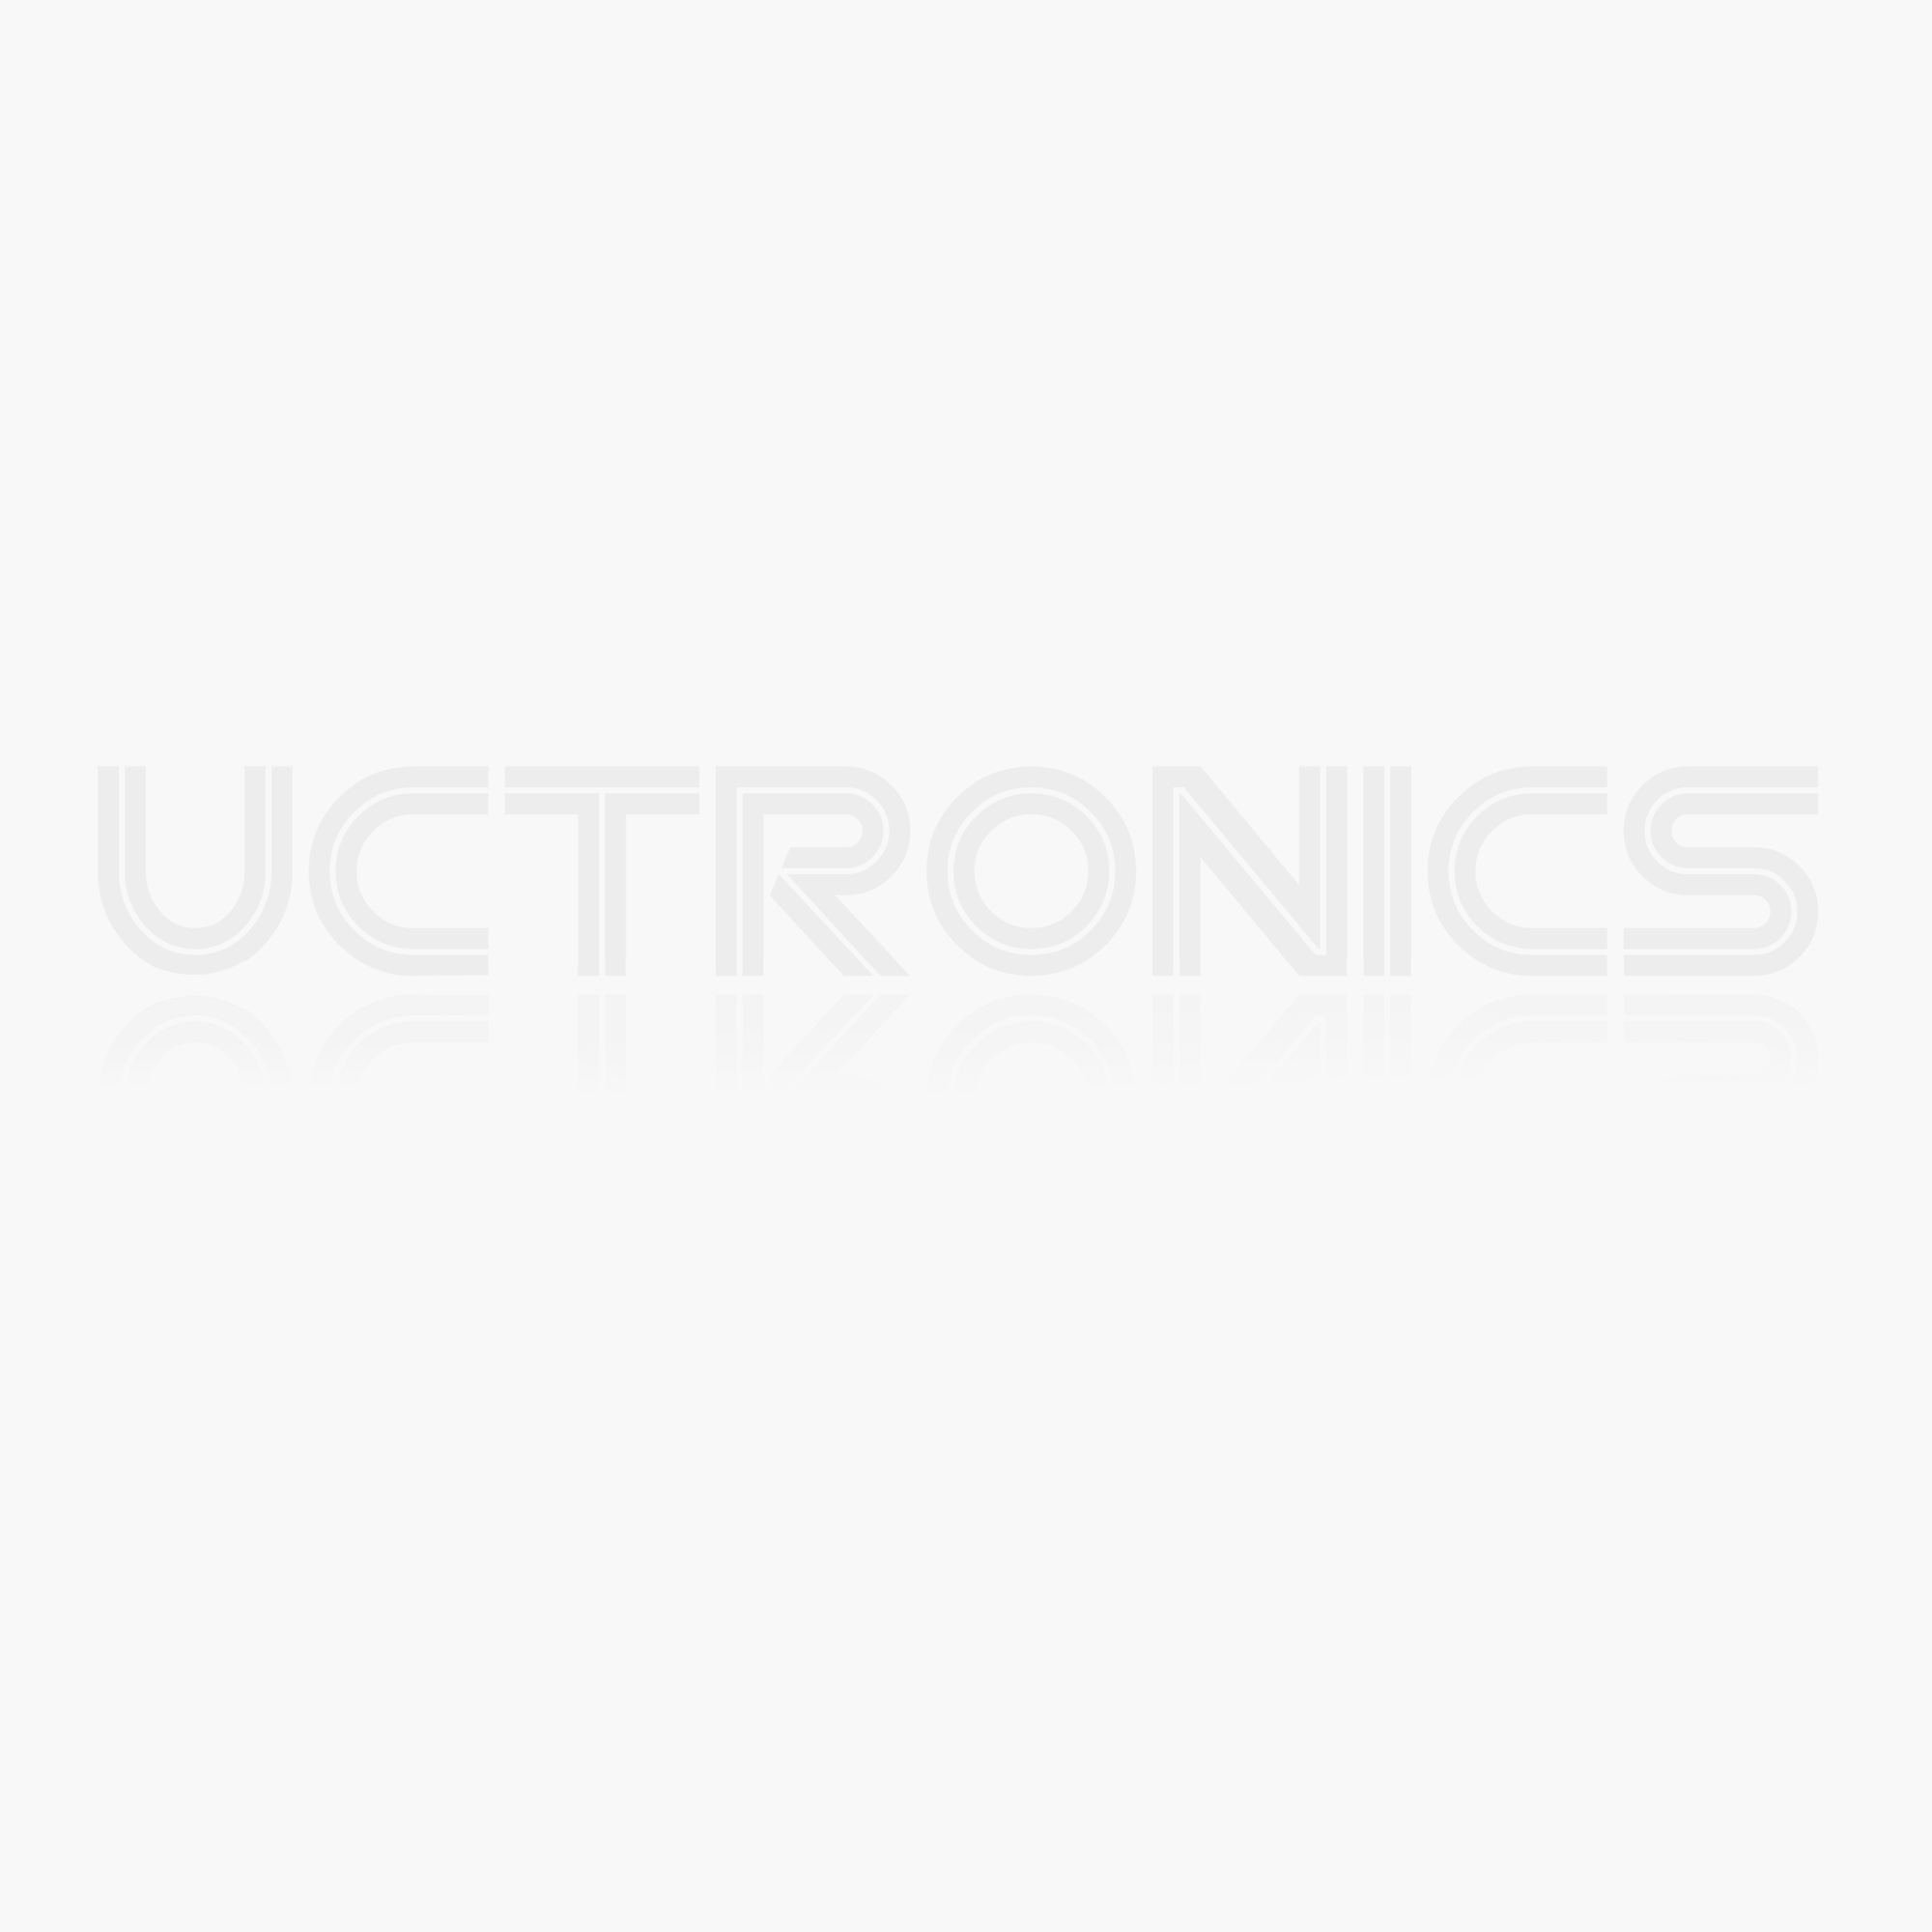 UCTRONICS PoE Splitter Gigabit 5V - Micro USB Power and Ethernet to Raspberry Pi 3B+, Work with Echo Dot, most Micro USB Security Cameras and Tablets - IEEE 802.3af Compliant